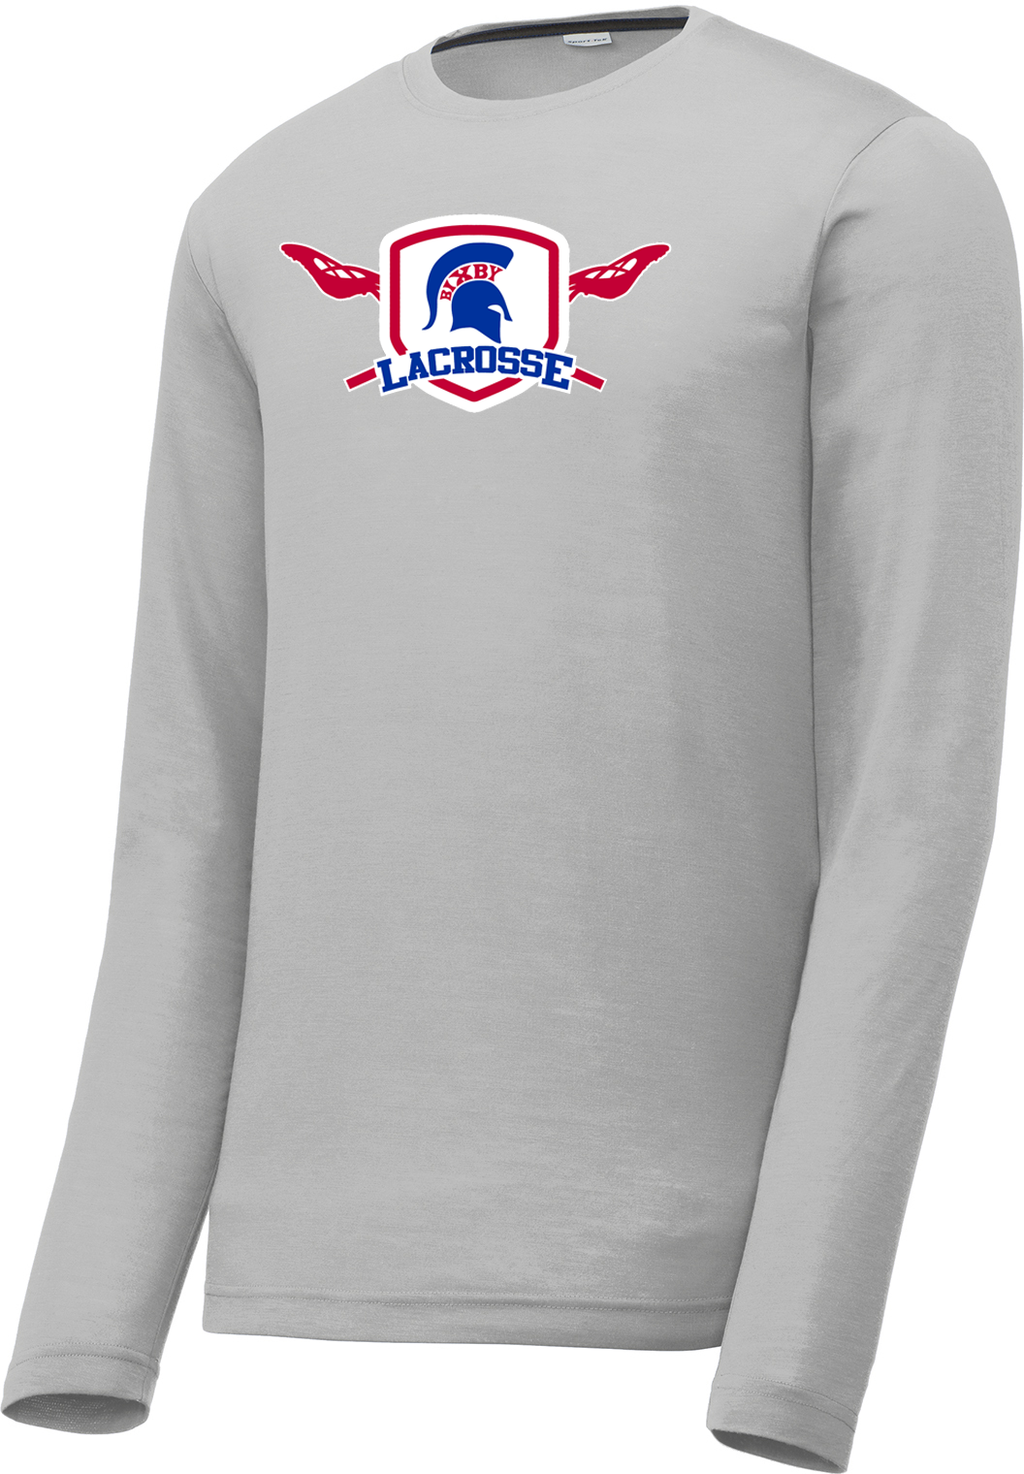 Bixby Lacrosse Silver Long Sleeve CottonTouch Performance Shirt